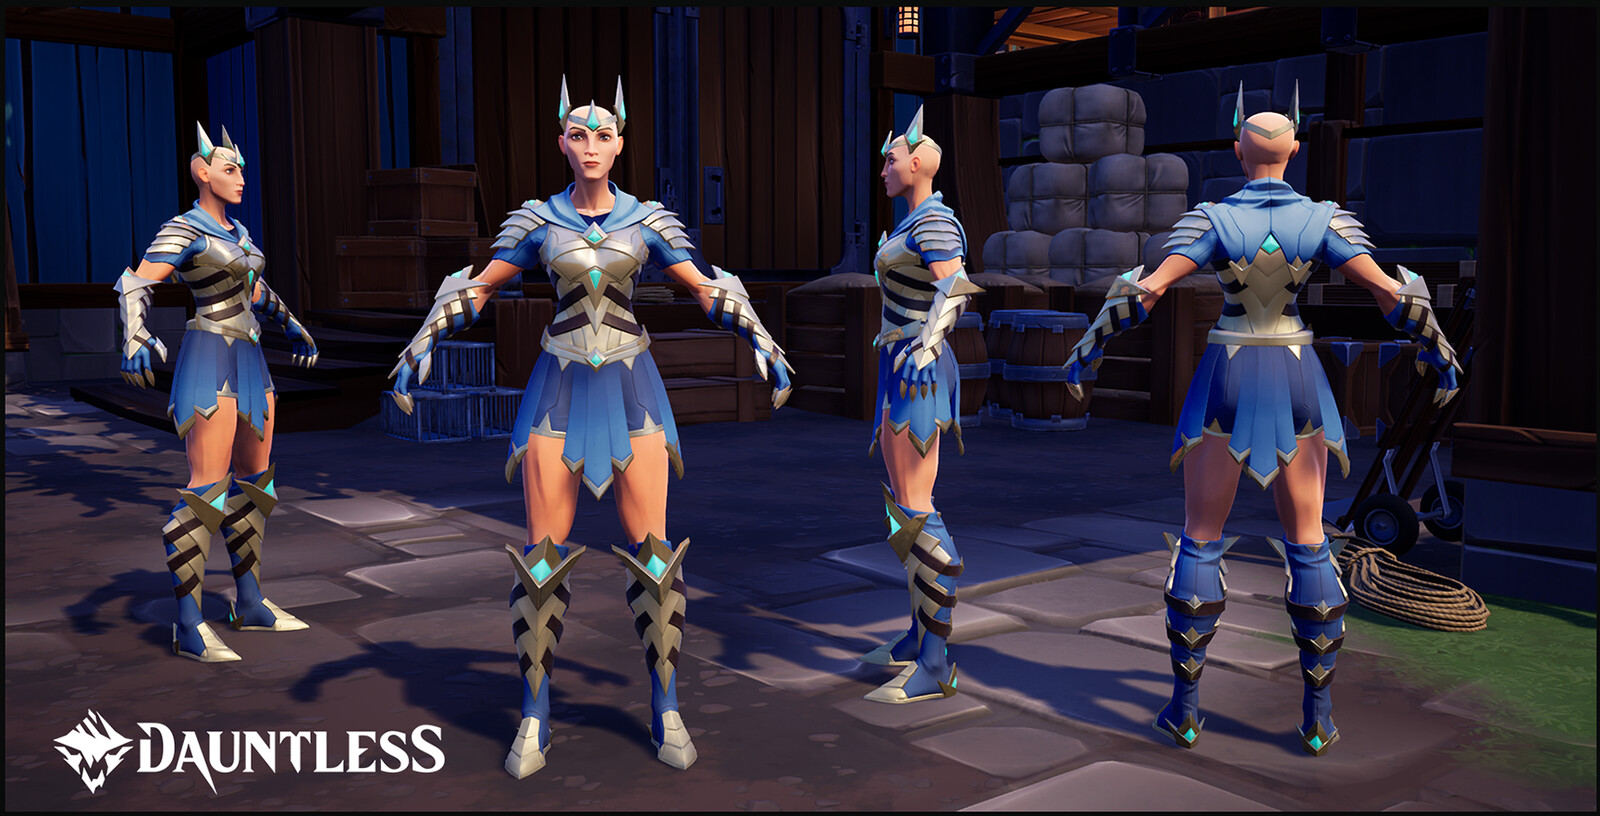 Aetheric Guardian outfit.  Obtainable by purchasing the Dauntless Collector's Edition and/or the Dauntless SteelBook (female version shown).